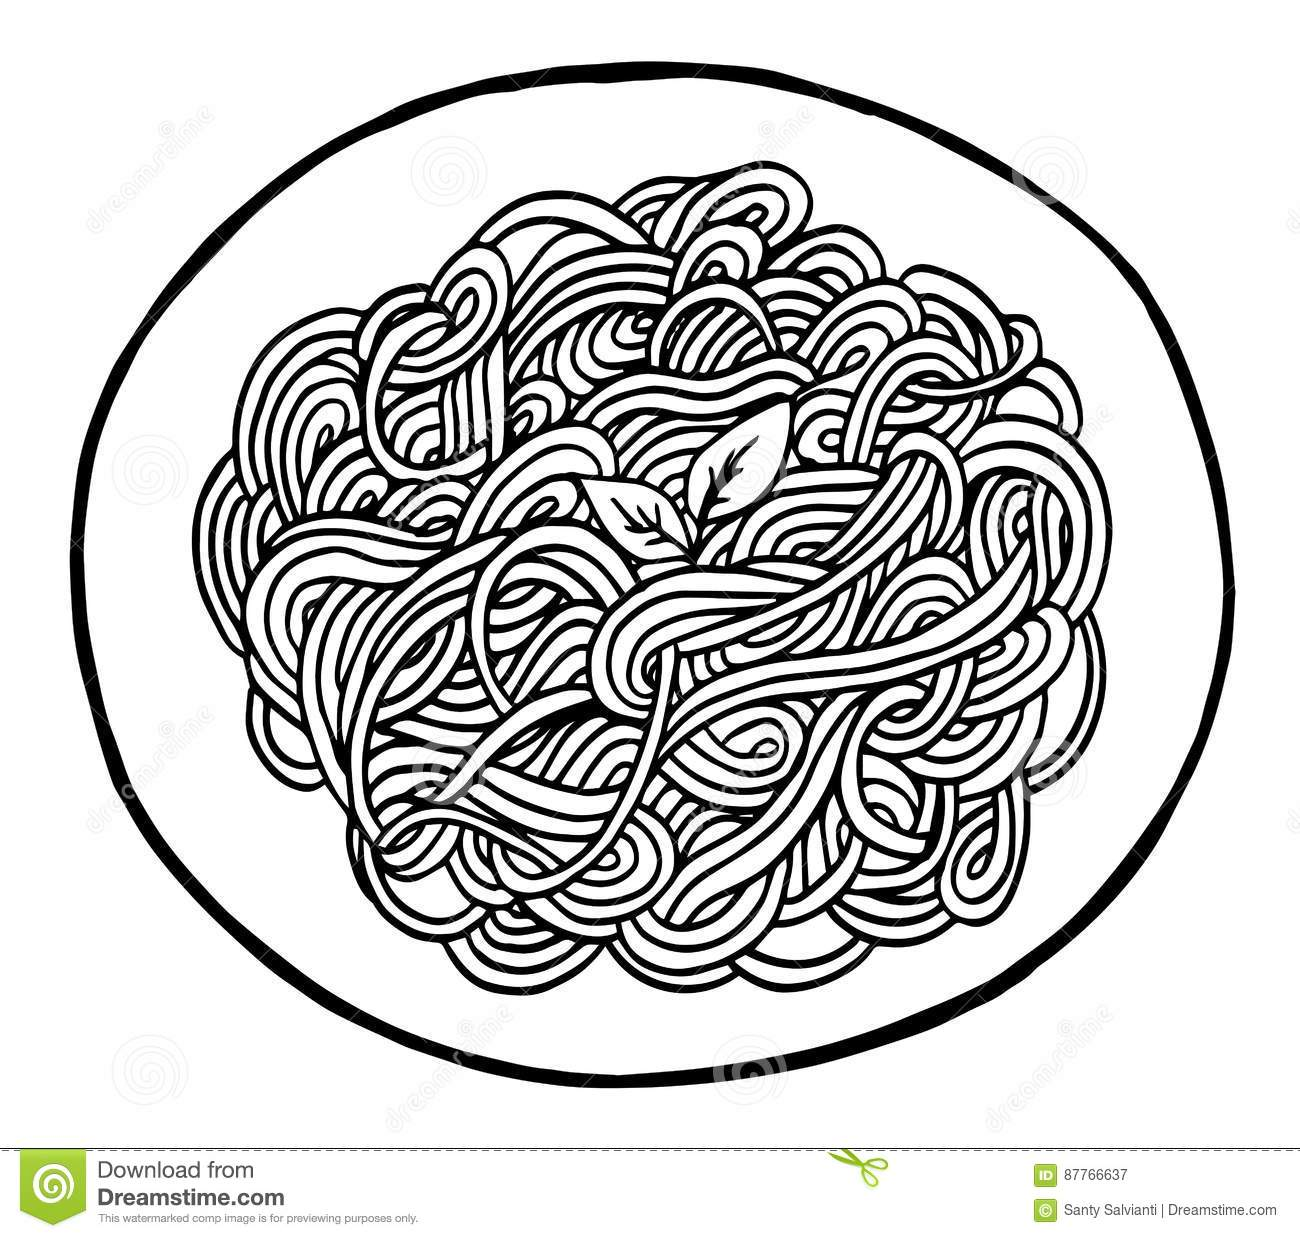 Doodle Spaghetti Hand Drawing Stock Vector - Illustration of black ...